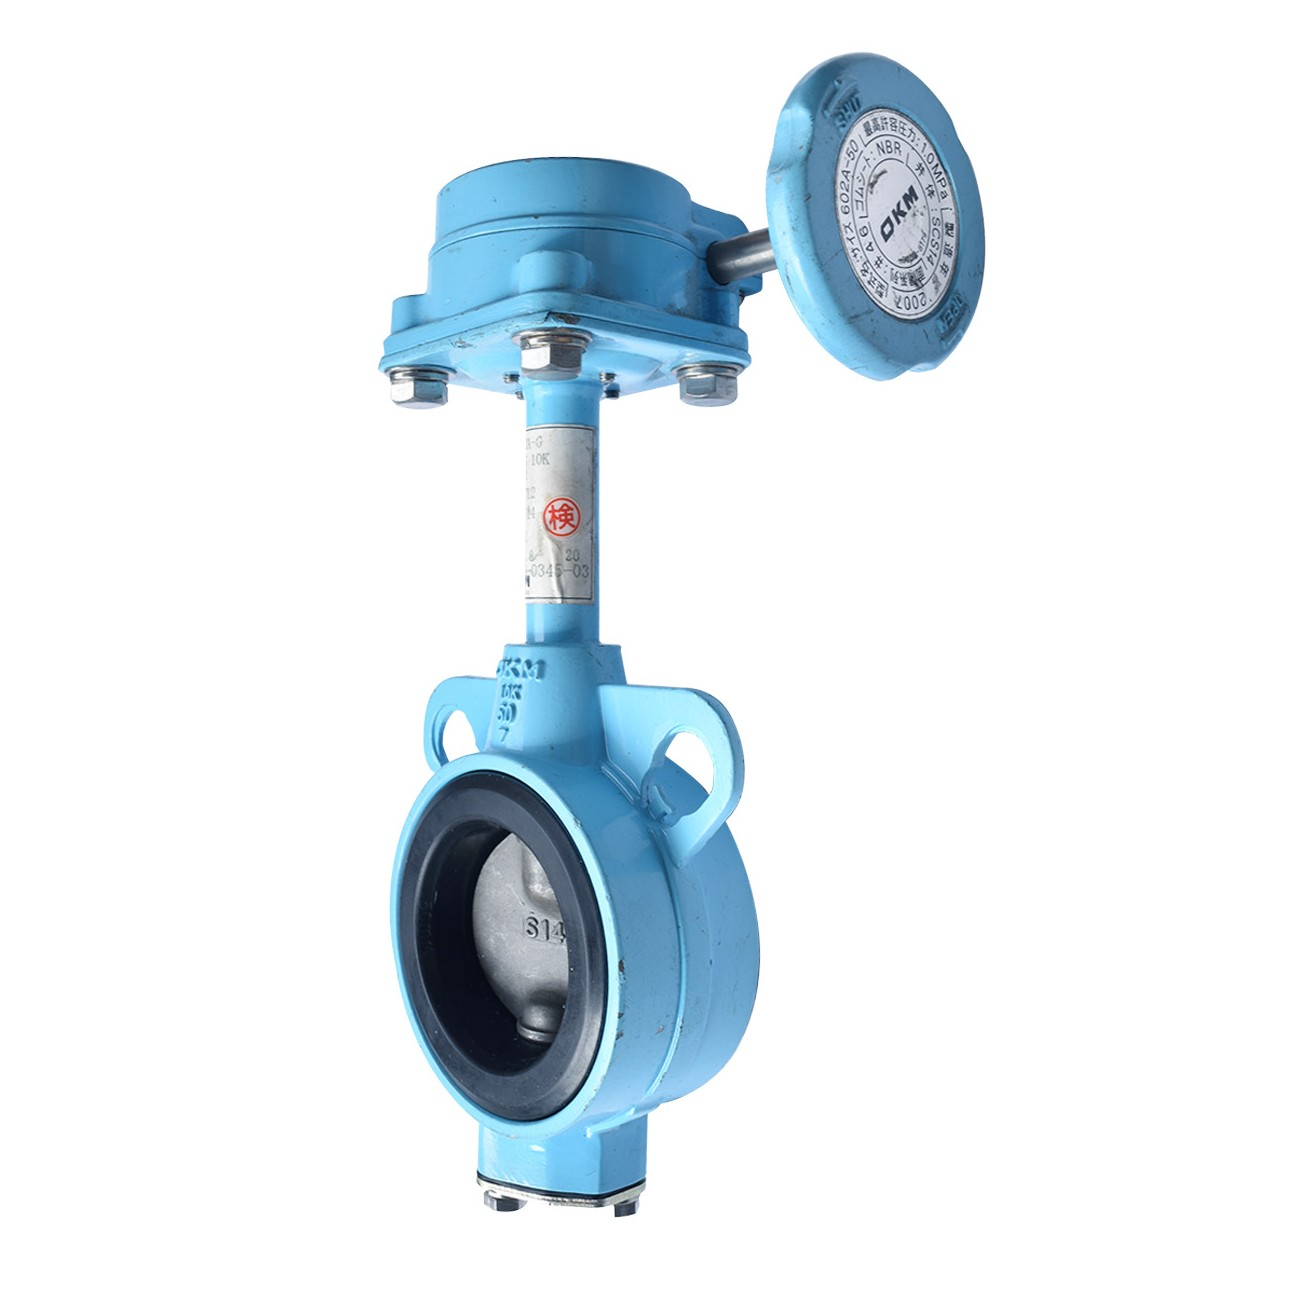 OVER STOCK Butterfly Valve OKM Gear ADC12 Fig 602, 12""